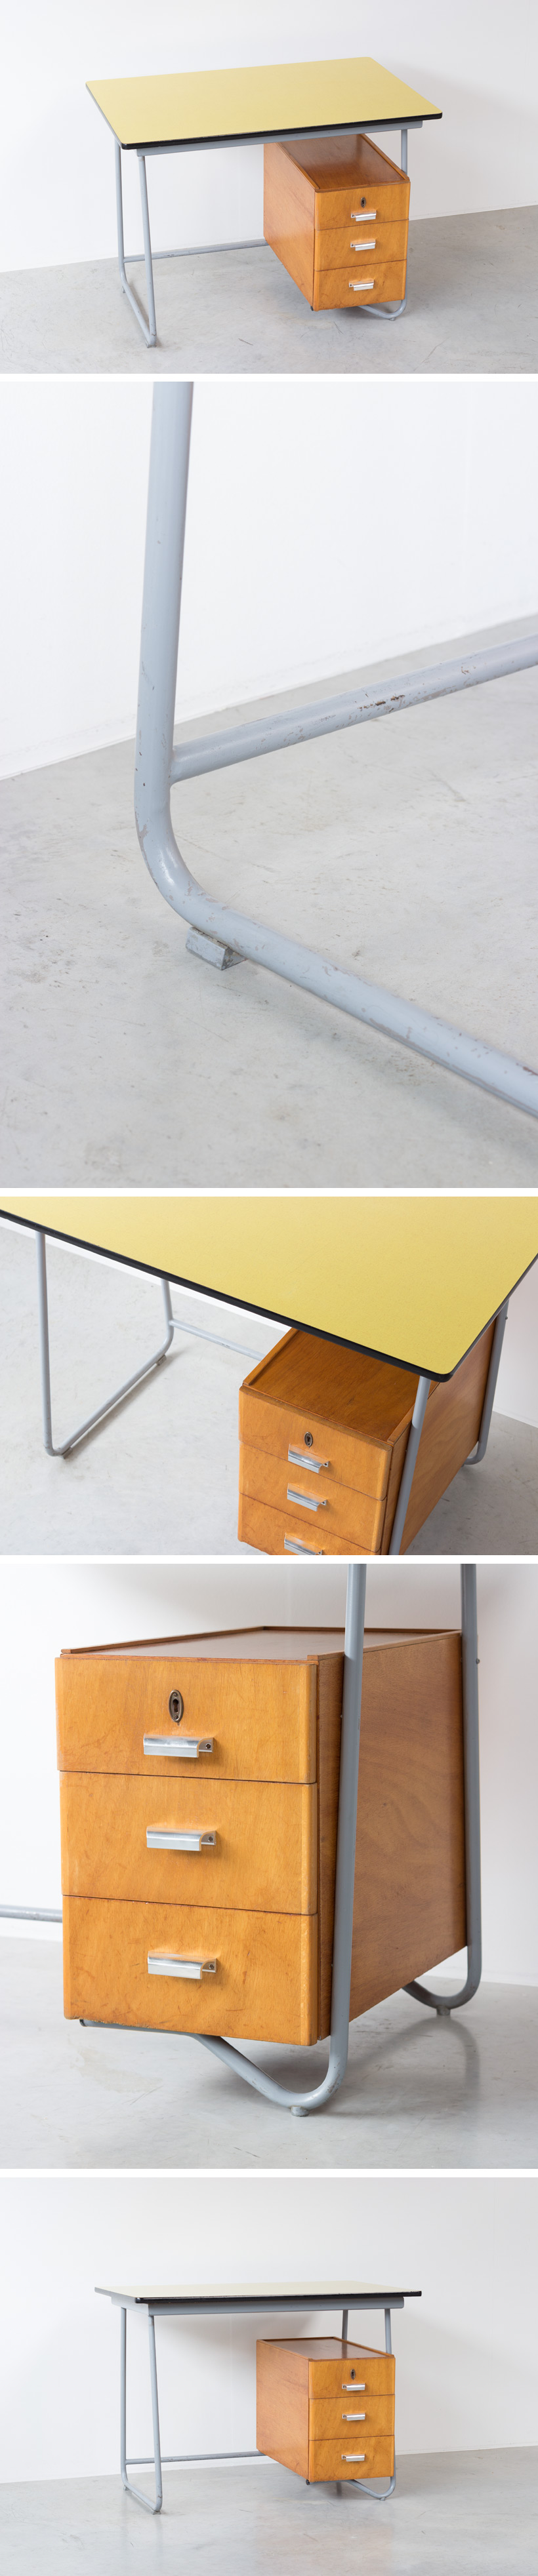 Fifties tubular steel and yellow formica desk 1950 Large